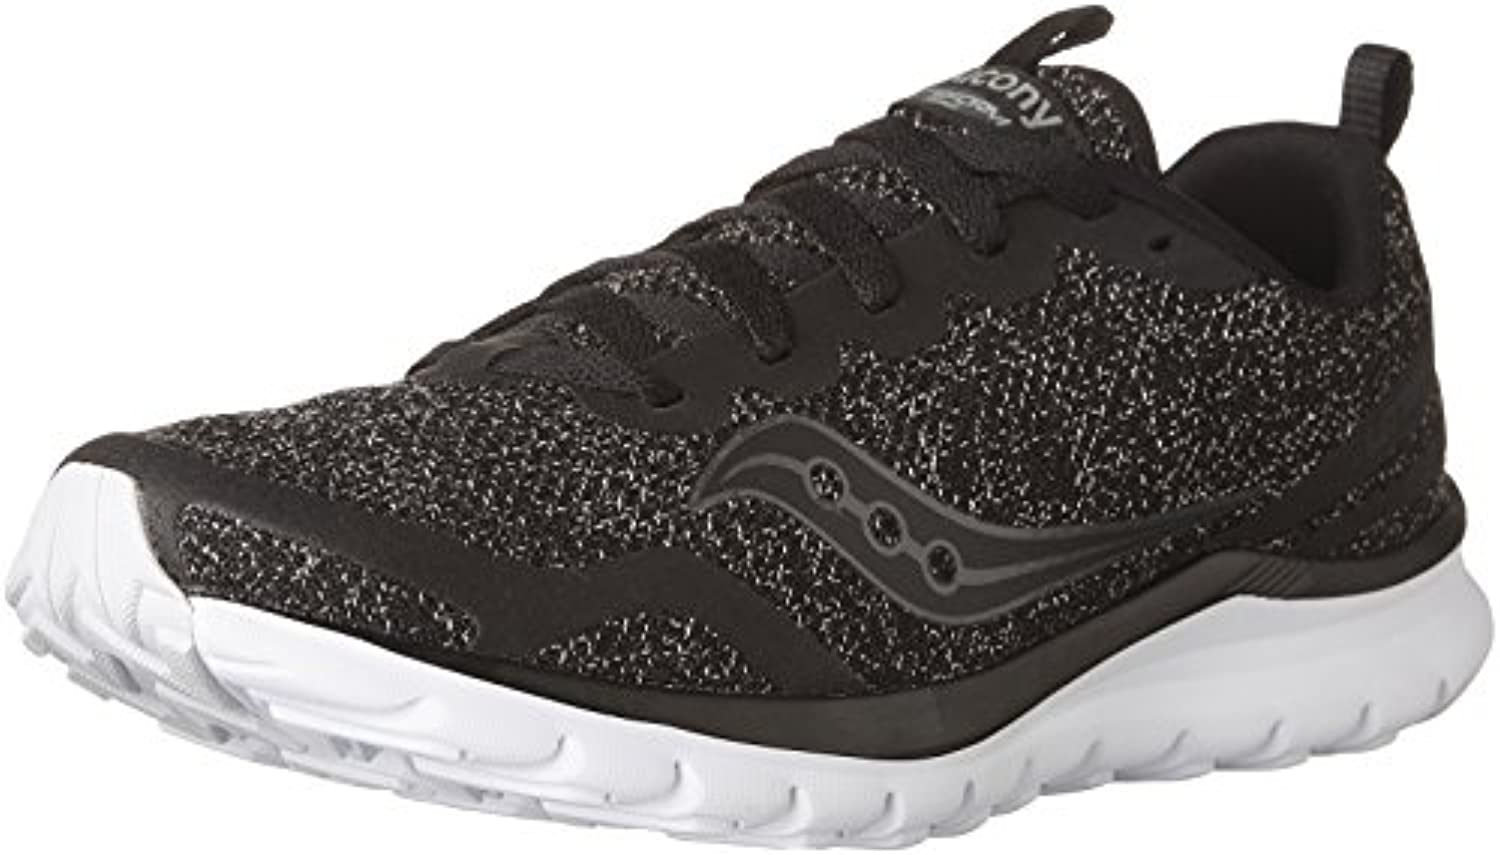 9668bb4de69 Saucony Women s Liteform Feel Feel Feel Running Shoe